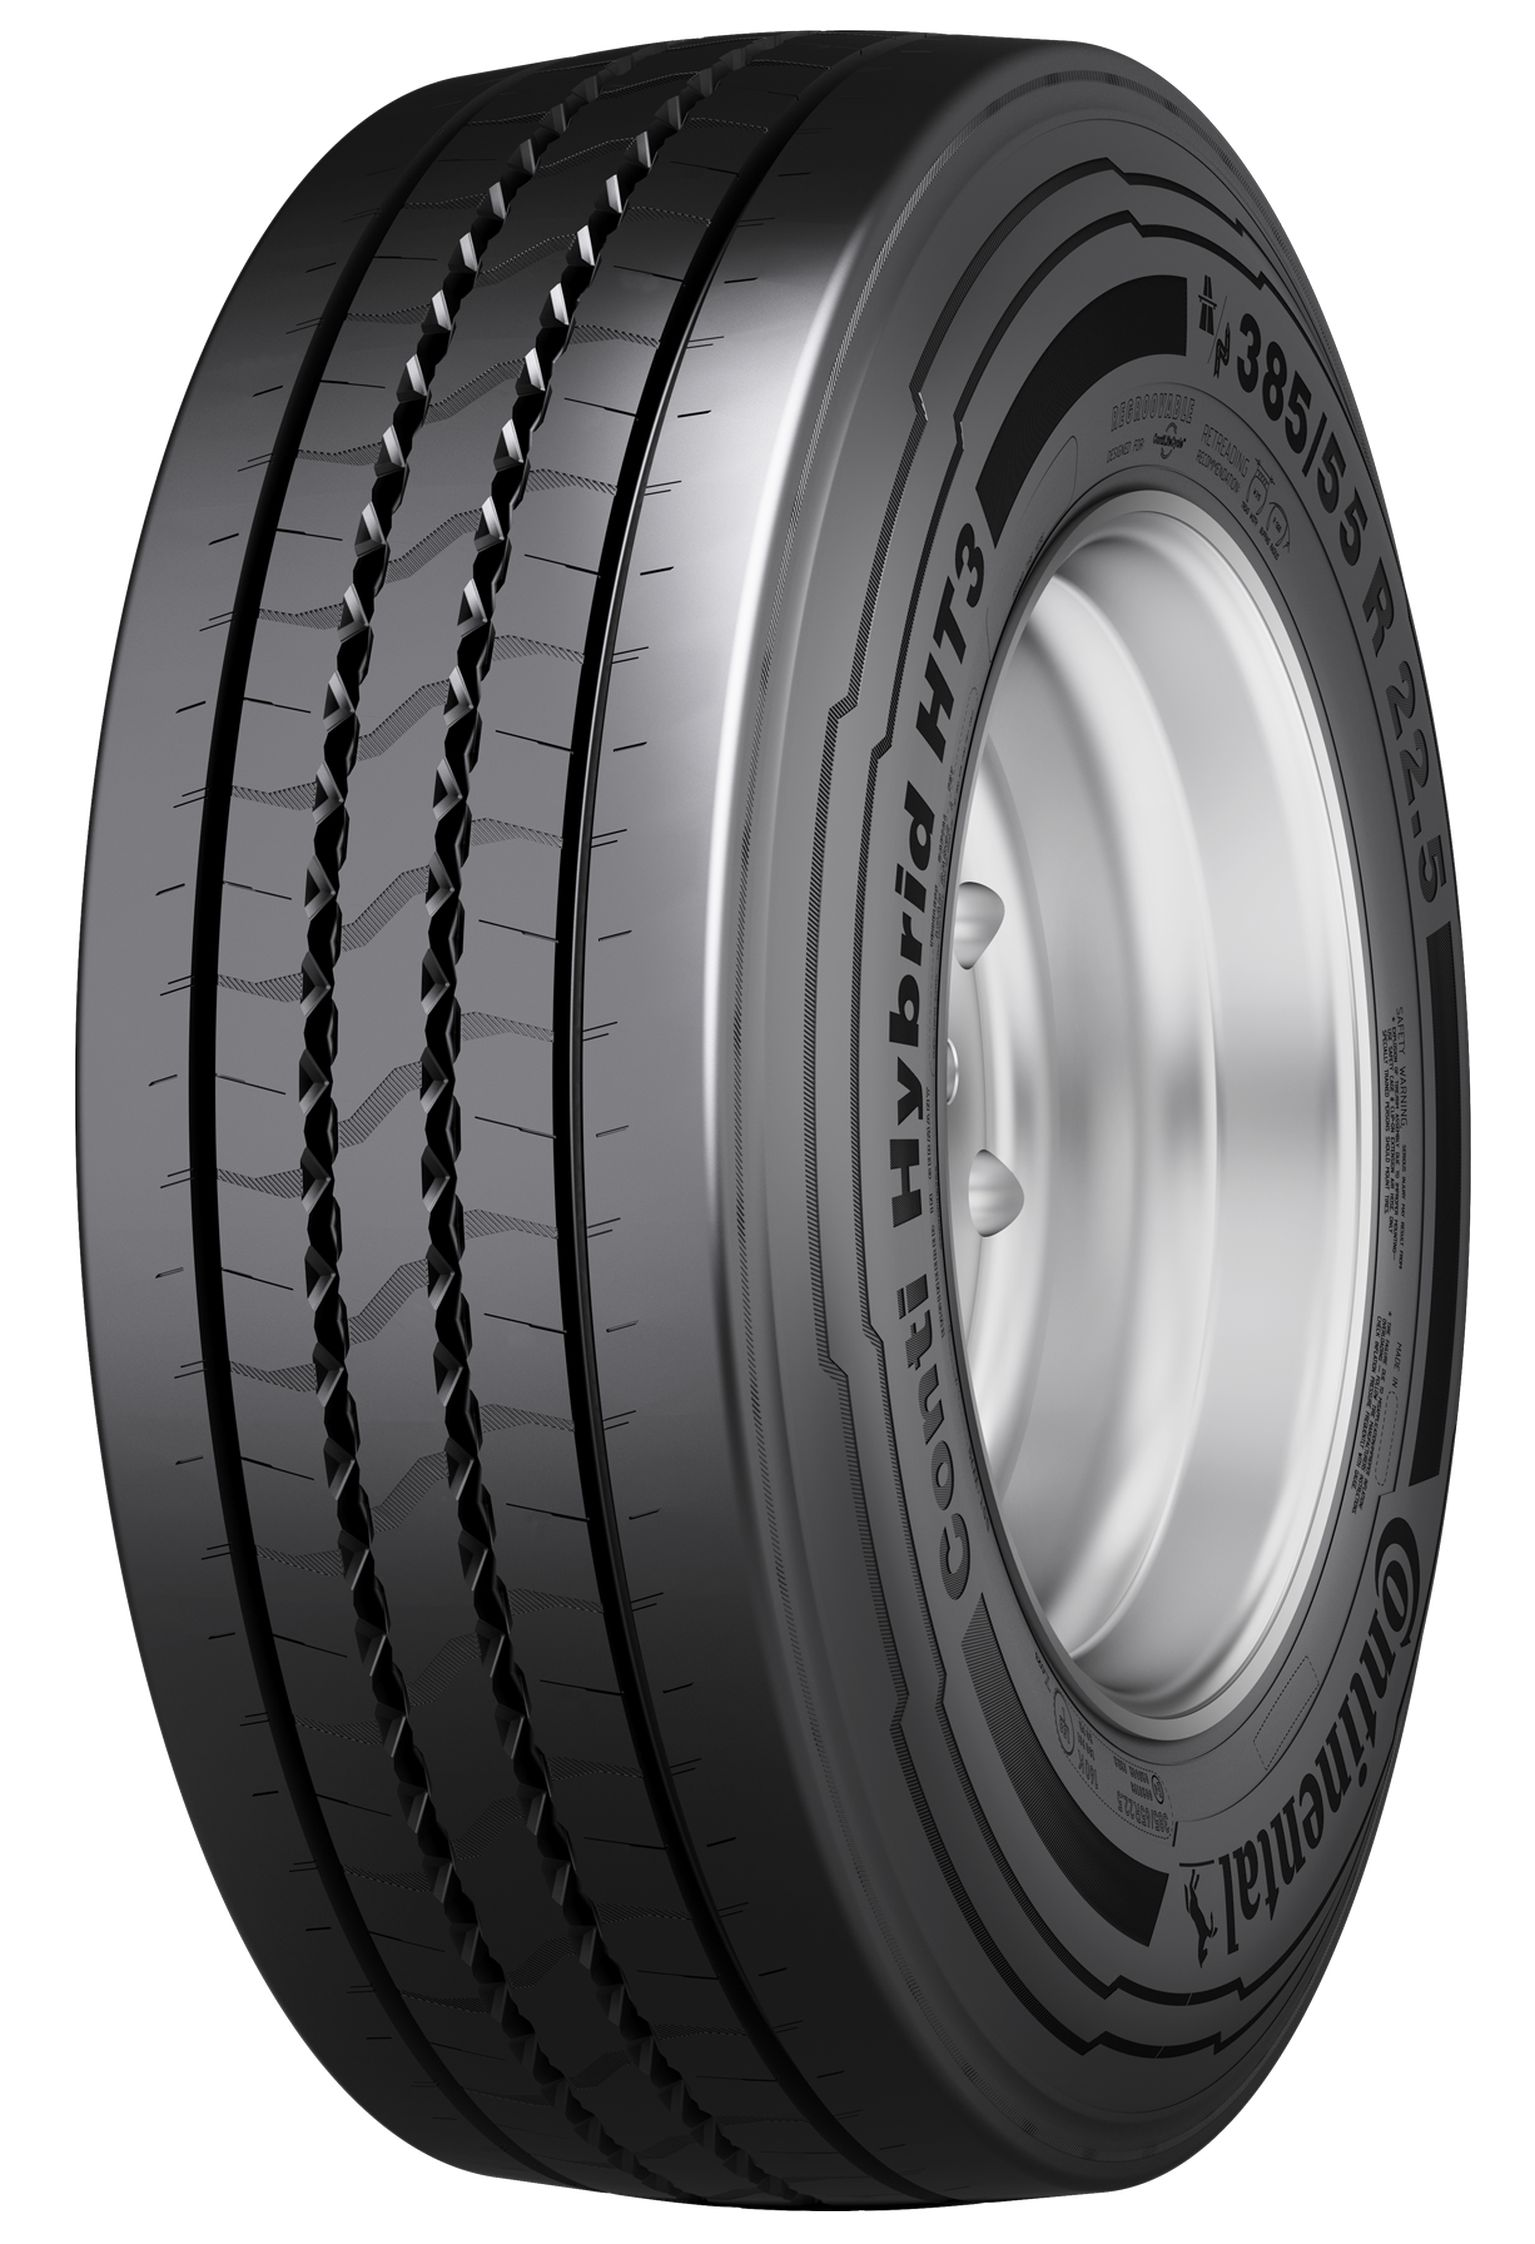 Anvelopa trailer CONTINENTAL Conti Hybrid HT3 (CHT3) 445/45 R19.5 160J